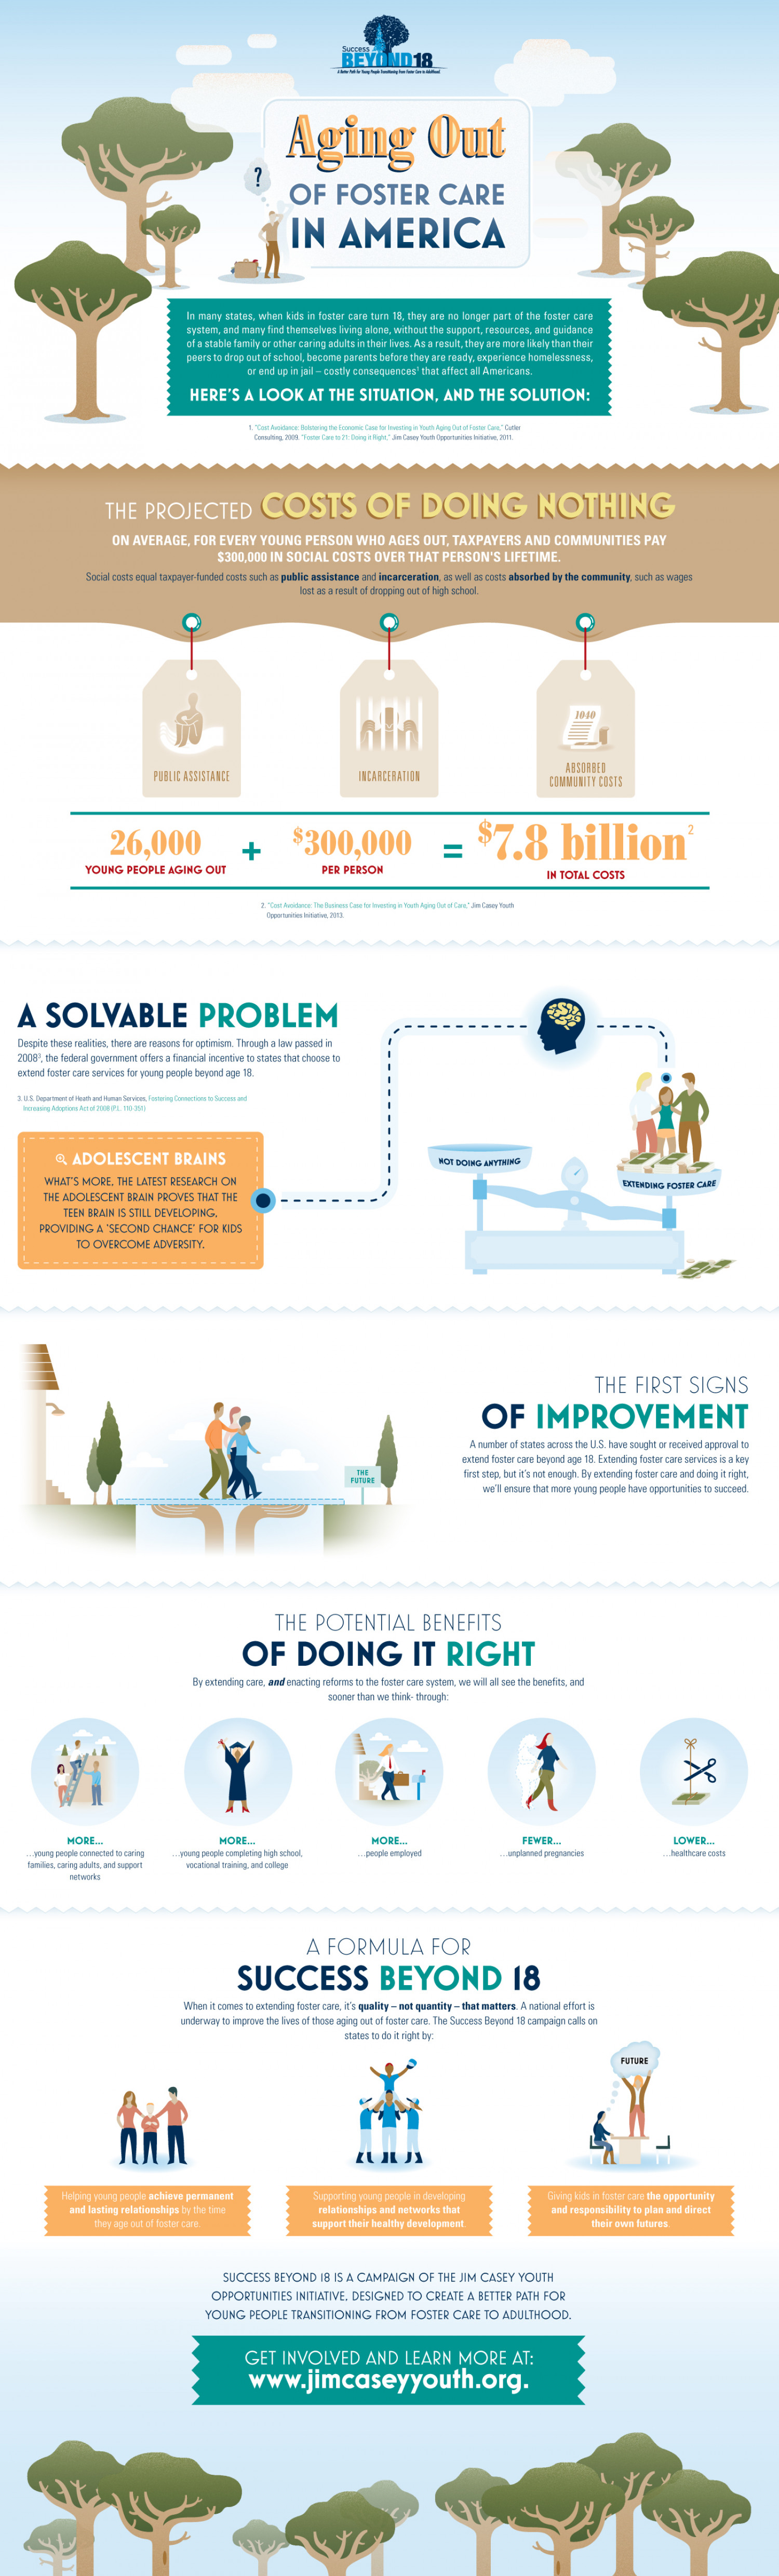 Aging Out of Foster Care in America Infographic